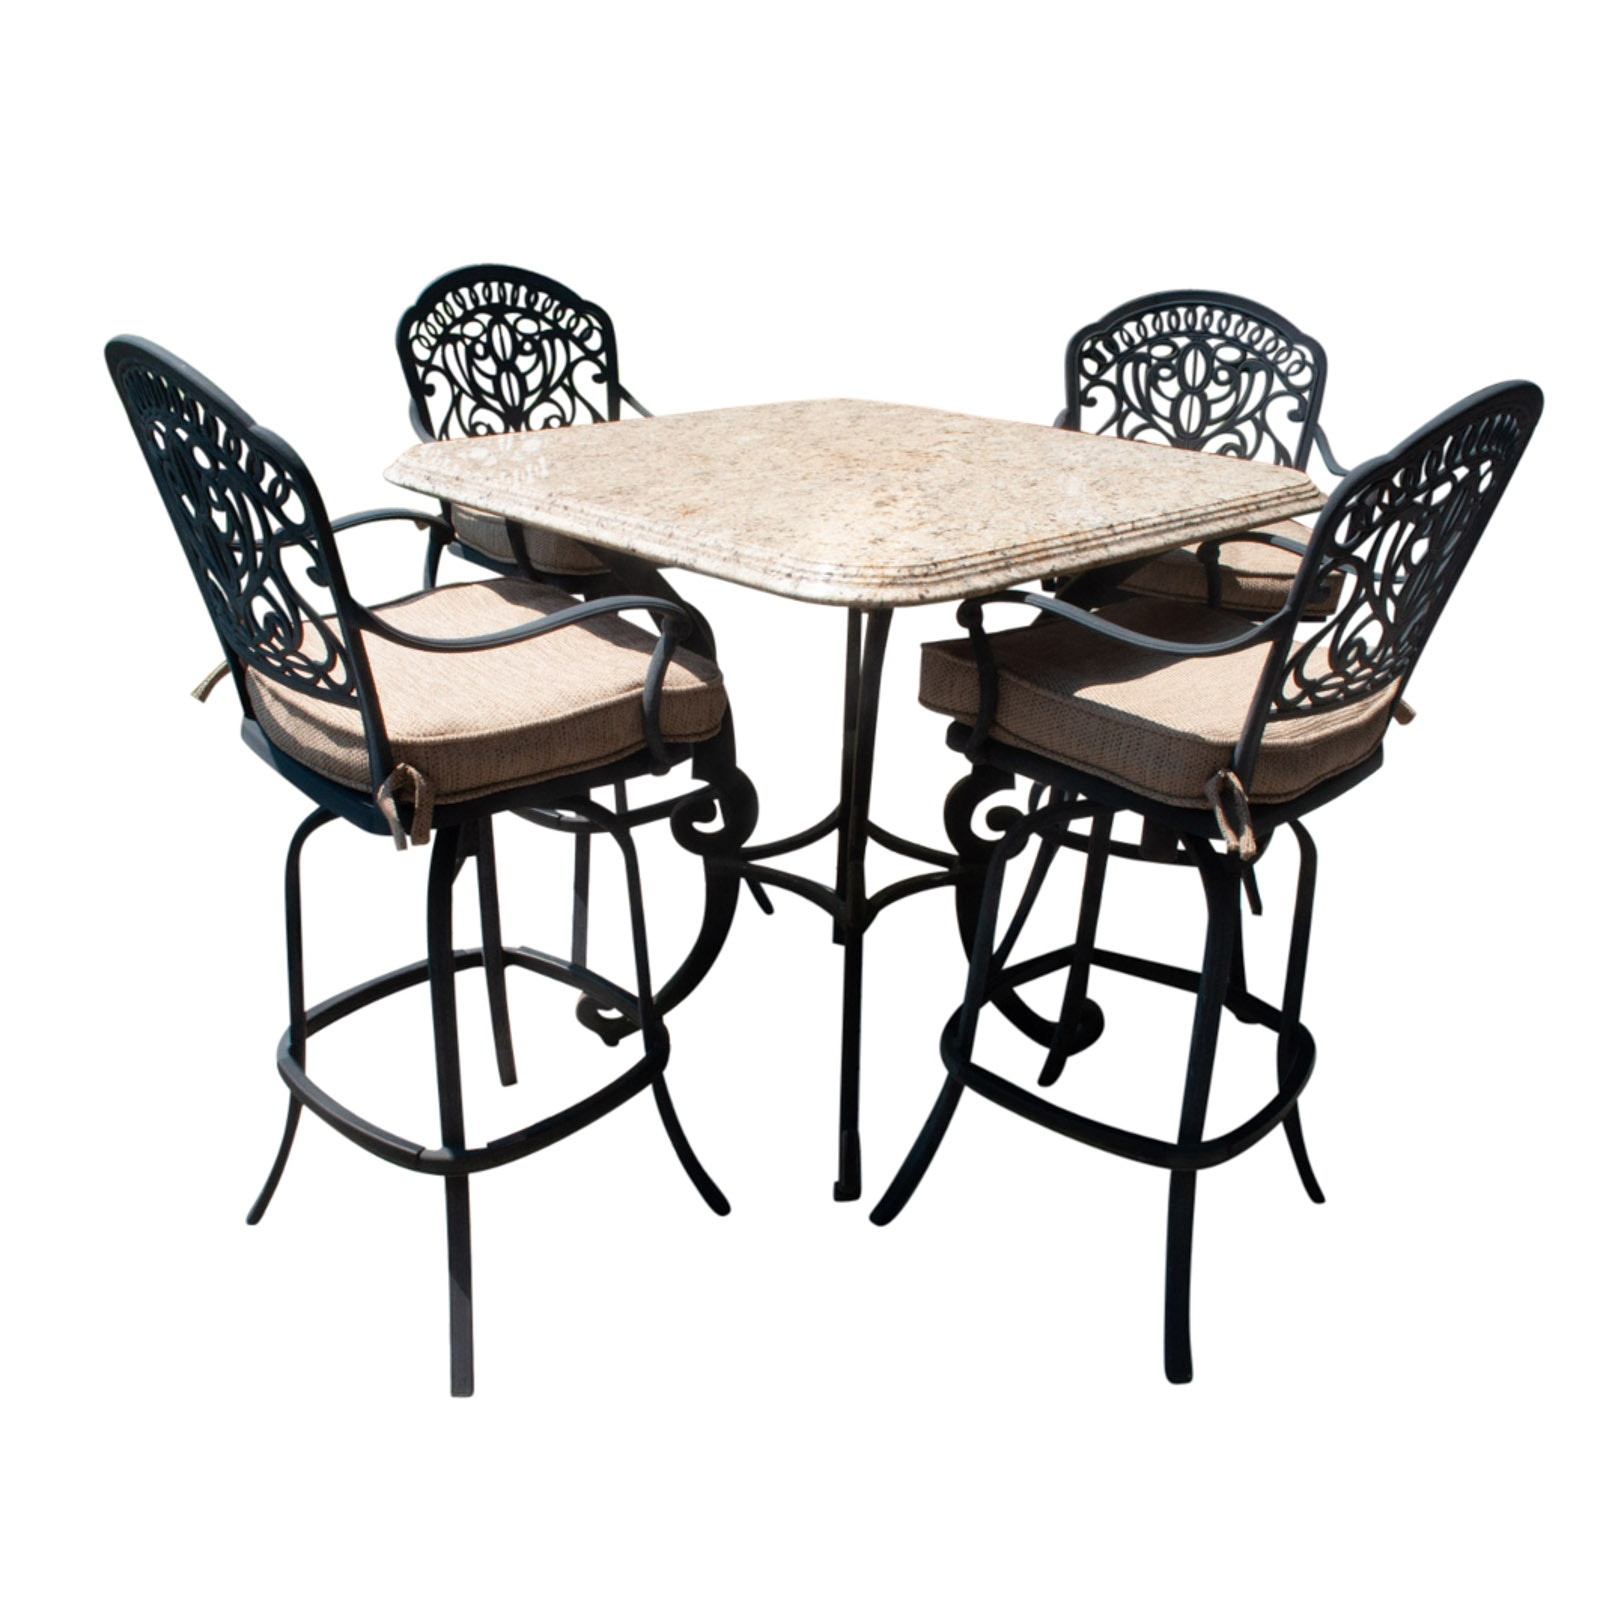 Contemporary Patio Bar Table and Chairs